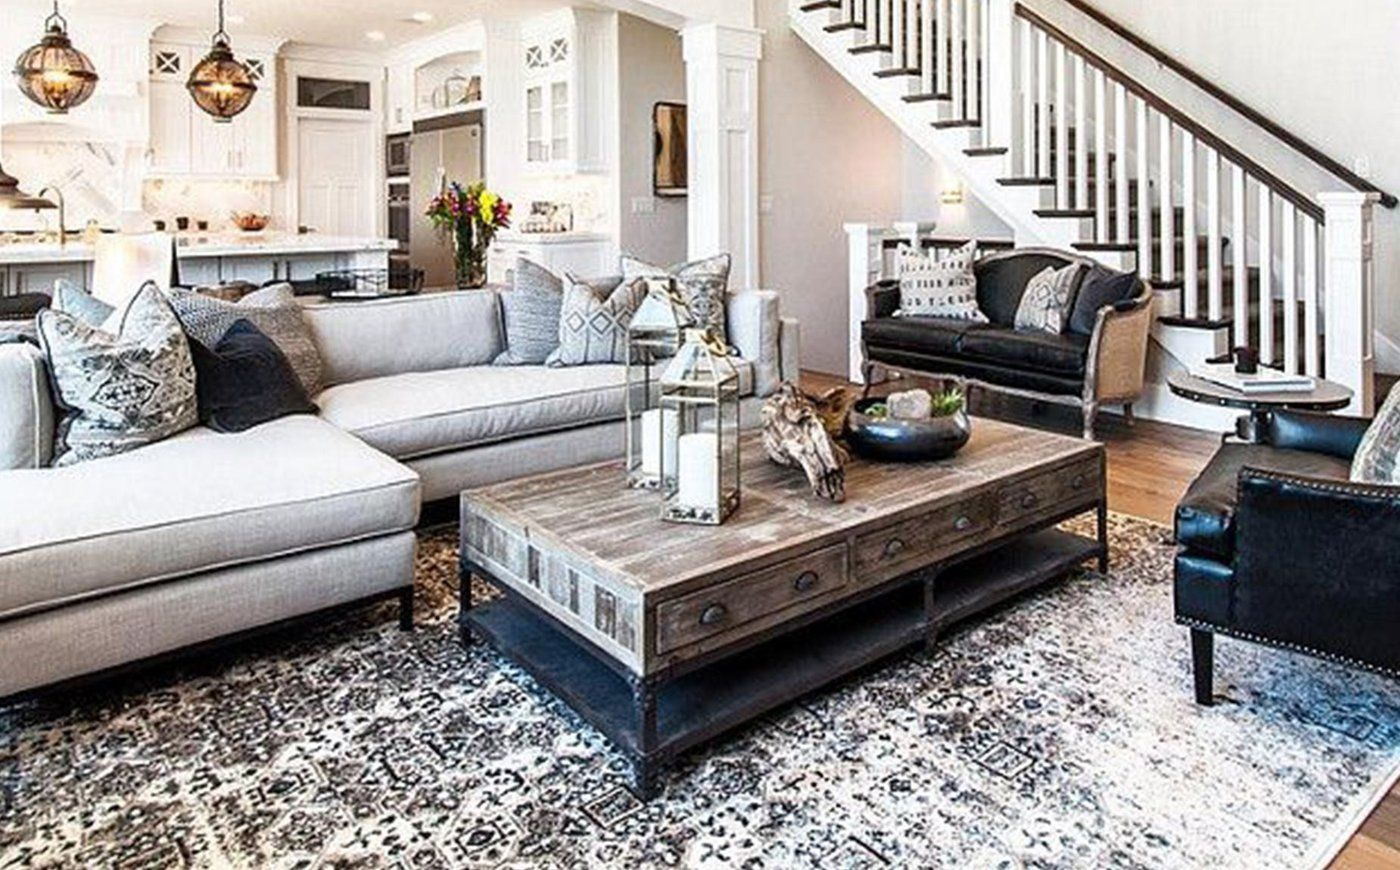 How To Buy Room Size Rugs Yonohomedesign Com In 2020 Room Size Rugs Living Room Rug Size Living Room Size #standard #living #room #rug #size